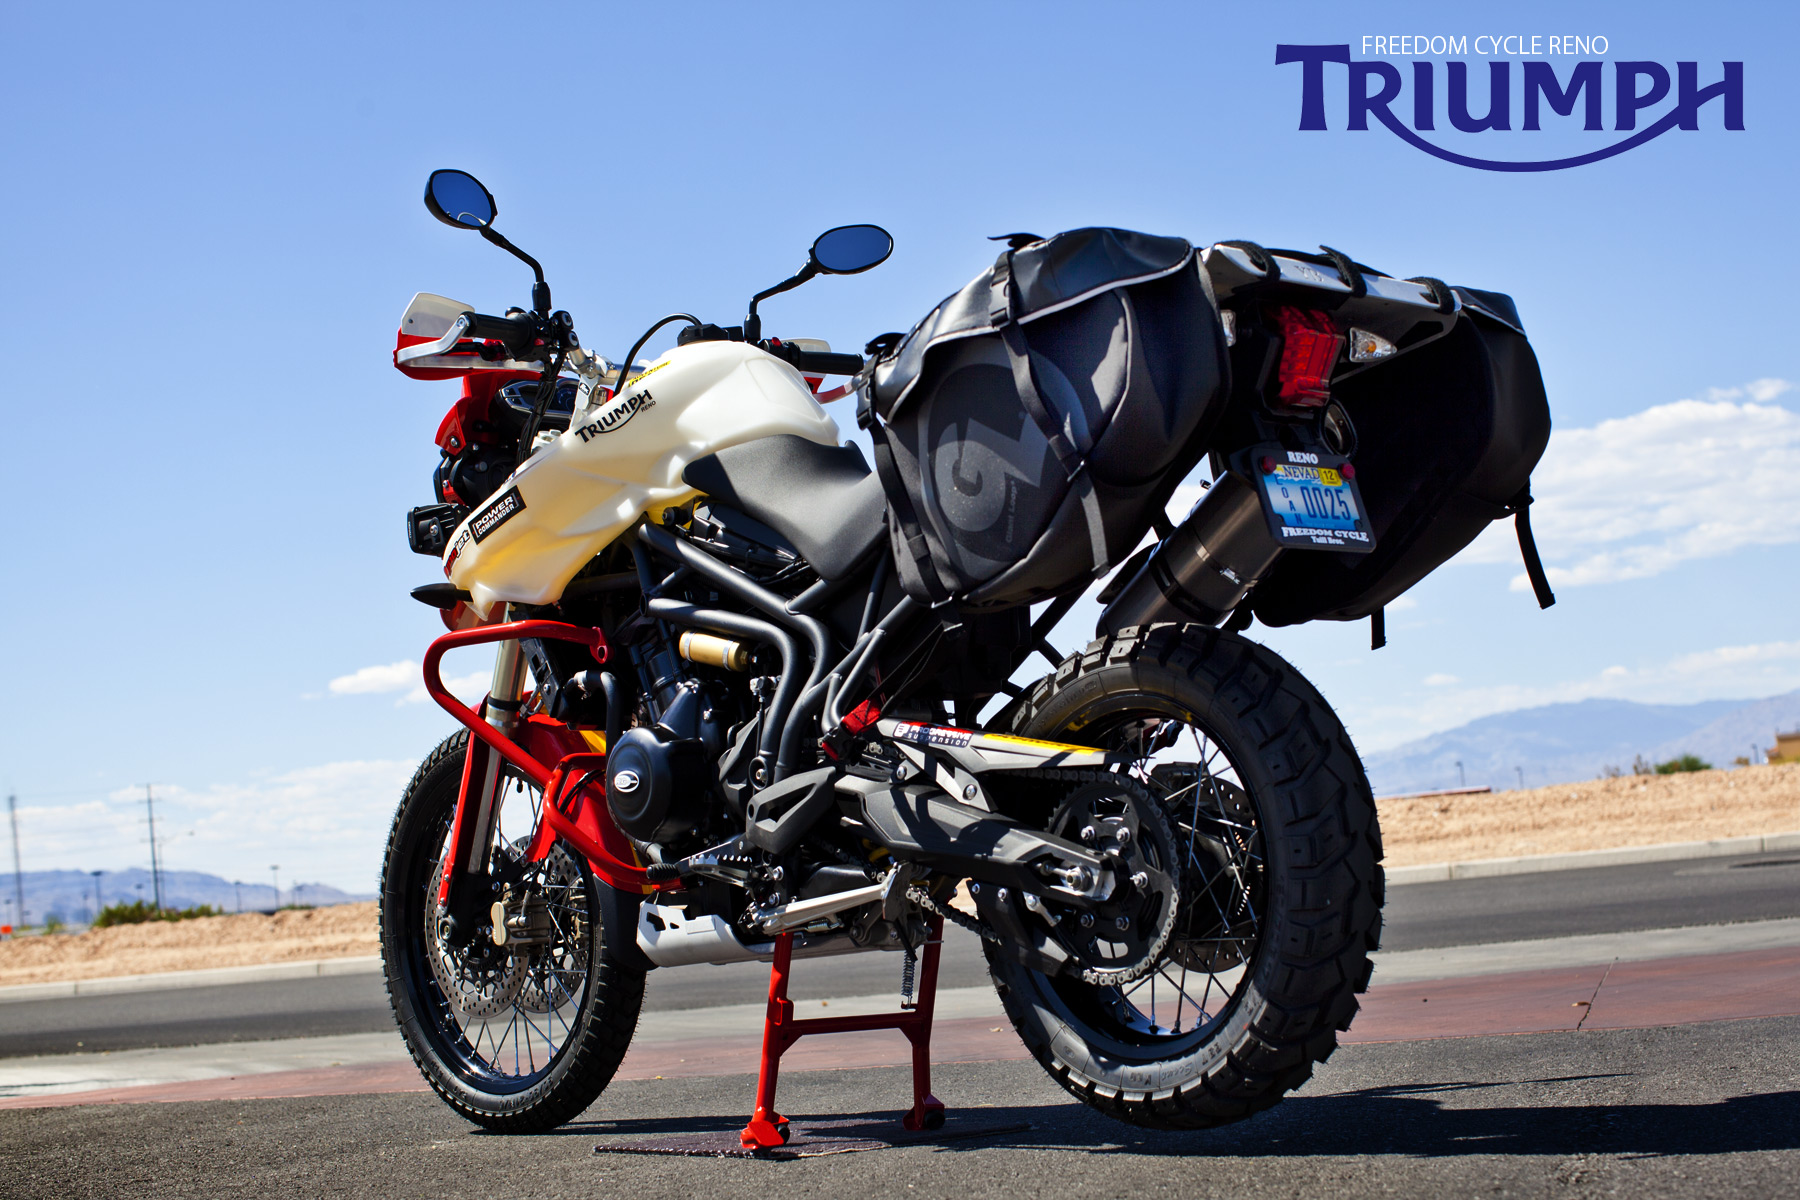 Custom-Triumph-Tiger-800XC-Freedom-Cycle-Reno